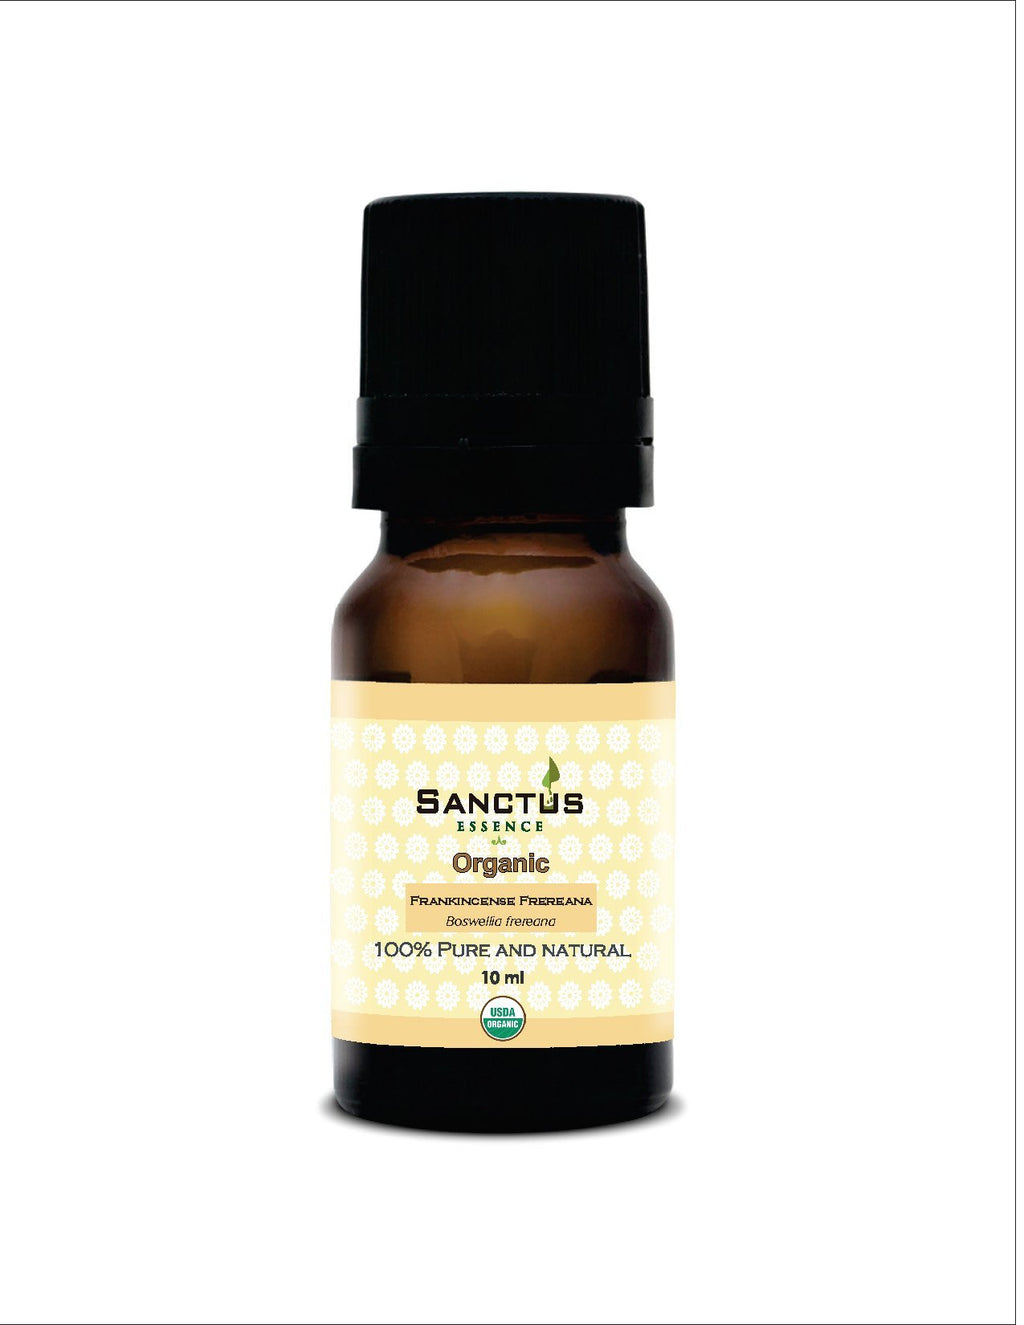 Organic Frankincense Frereana Oil - Sanctus Essence